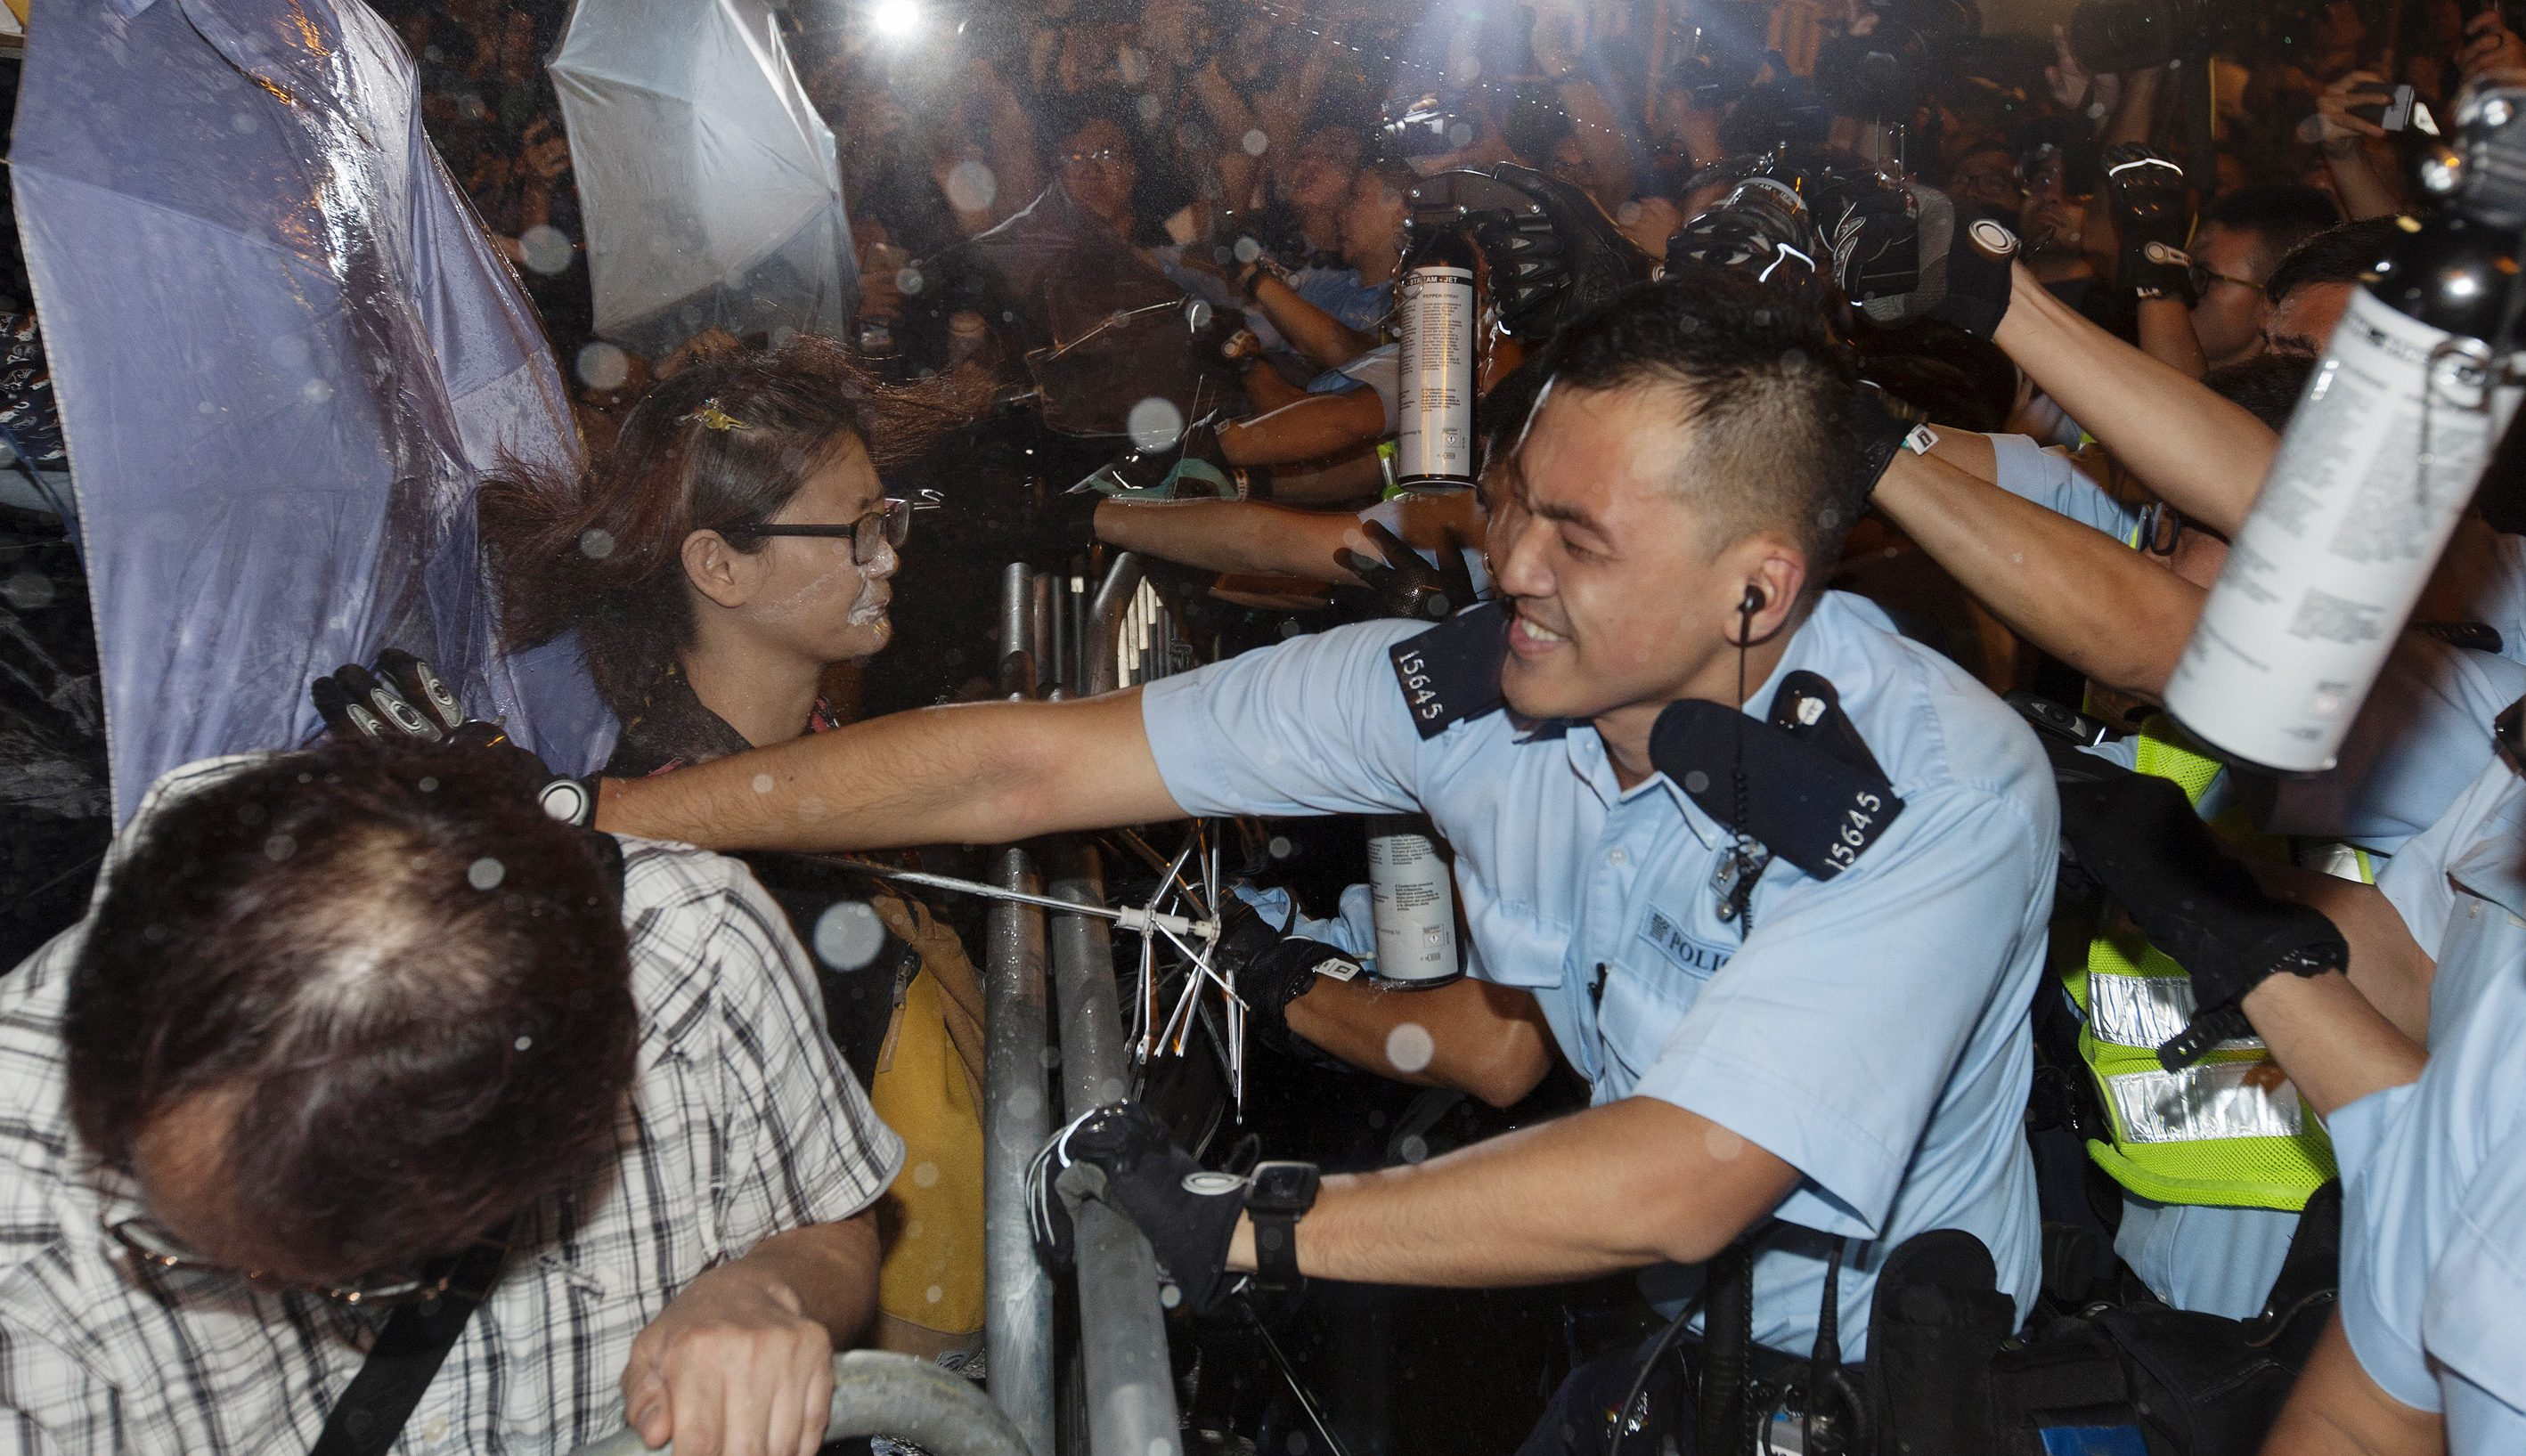 Police clash with protestors at a police barricade outside the Chinese government's headquarters in Hong Kong, China, 06 November 2016. Thousands of protestors marched through the streets of Hong Kong to protest against the Chinese government's controversial decision to decide the fate of two Hong Kong lawmakers who refused to pledge allegiance to the Hong Kong constitution and swore featly to the Hong Kong nation instead.  EPA/ALEX HOFFORD